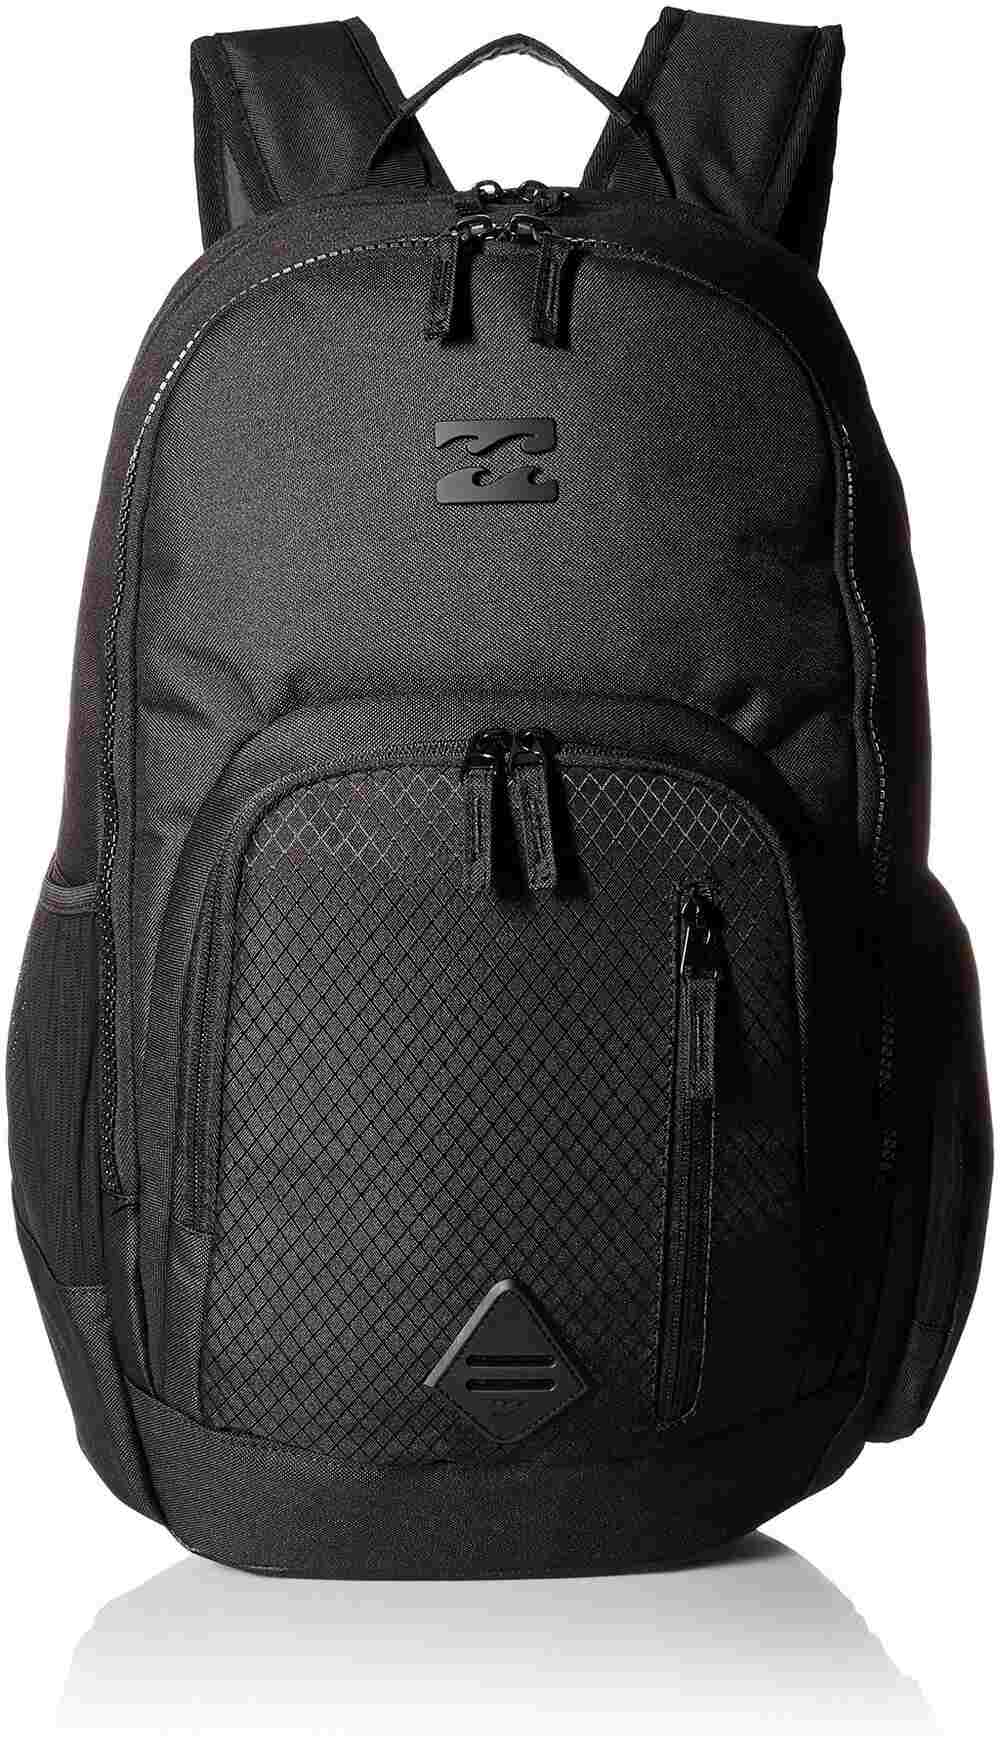 Billabong Men's Classic School Command Backpack, Stealth Black, One Size